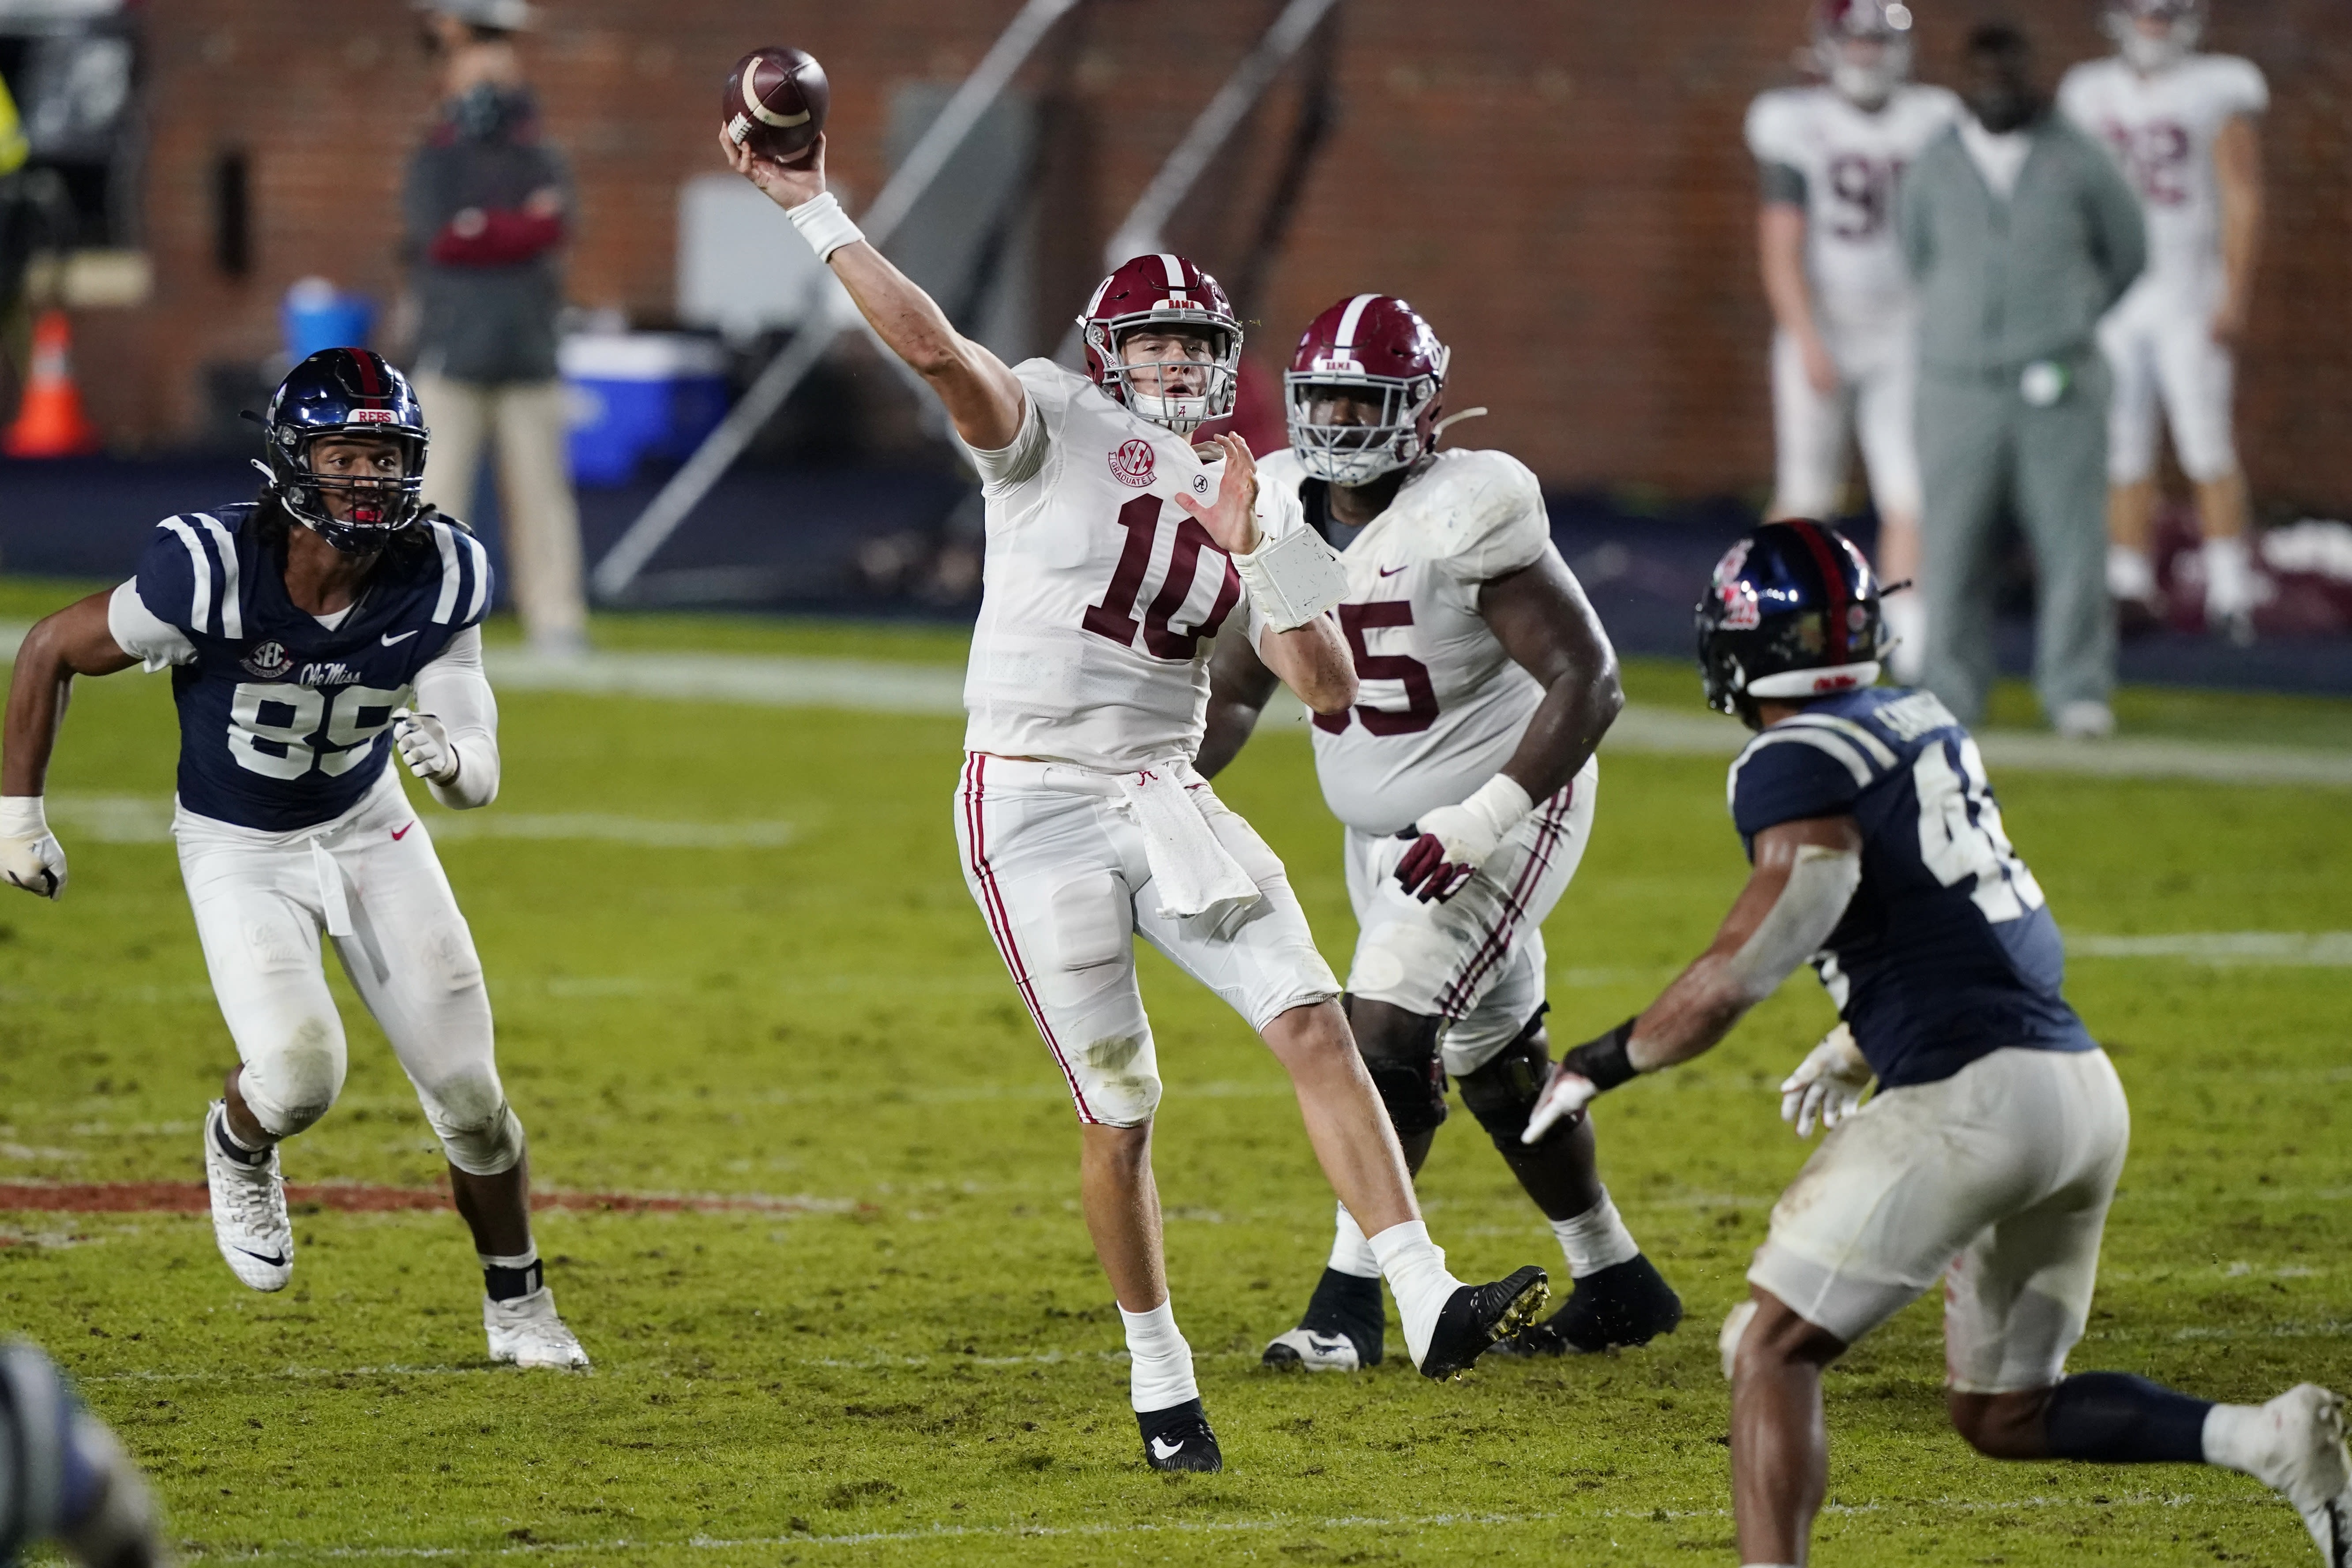 Alabama quarterback Mac Jones (10) passes while being pursued by Mississippi defensive end Ryder Anderson (89) during the second half of an NCAA college football game in Oxford, Miss., Saturday, Oct. 10, 2020. Alabama won 63-48. (AP Photo/Rogelio V. Solis)